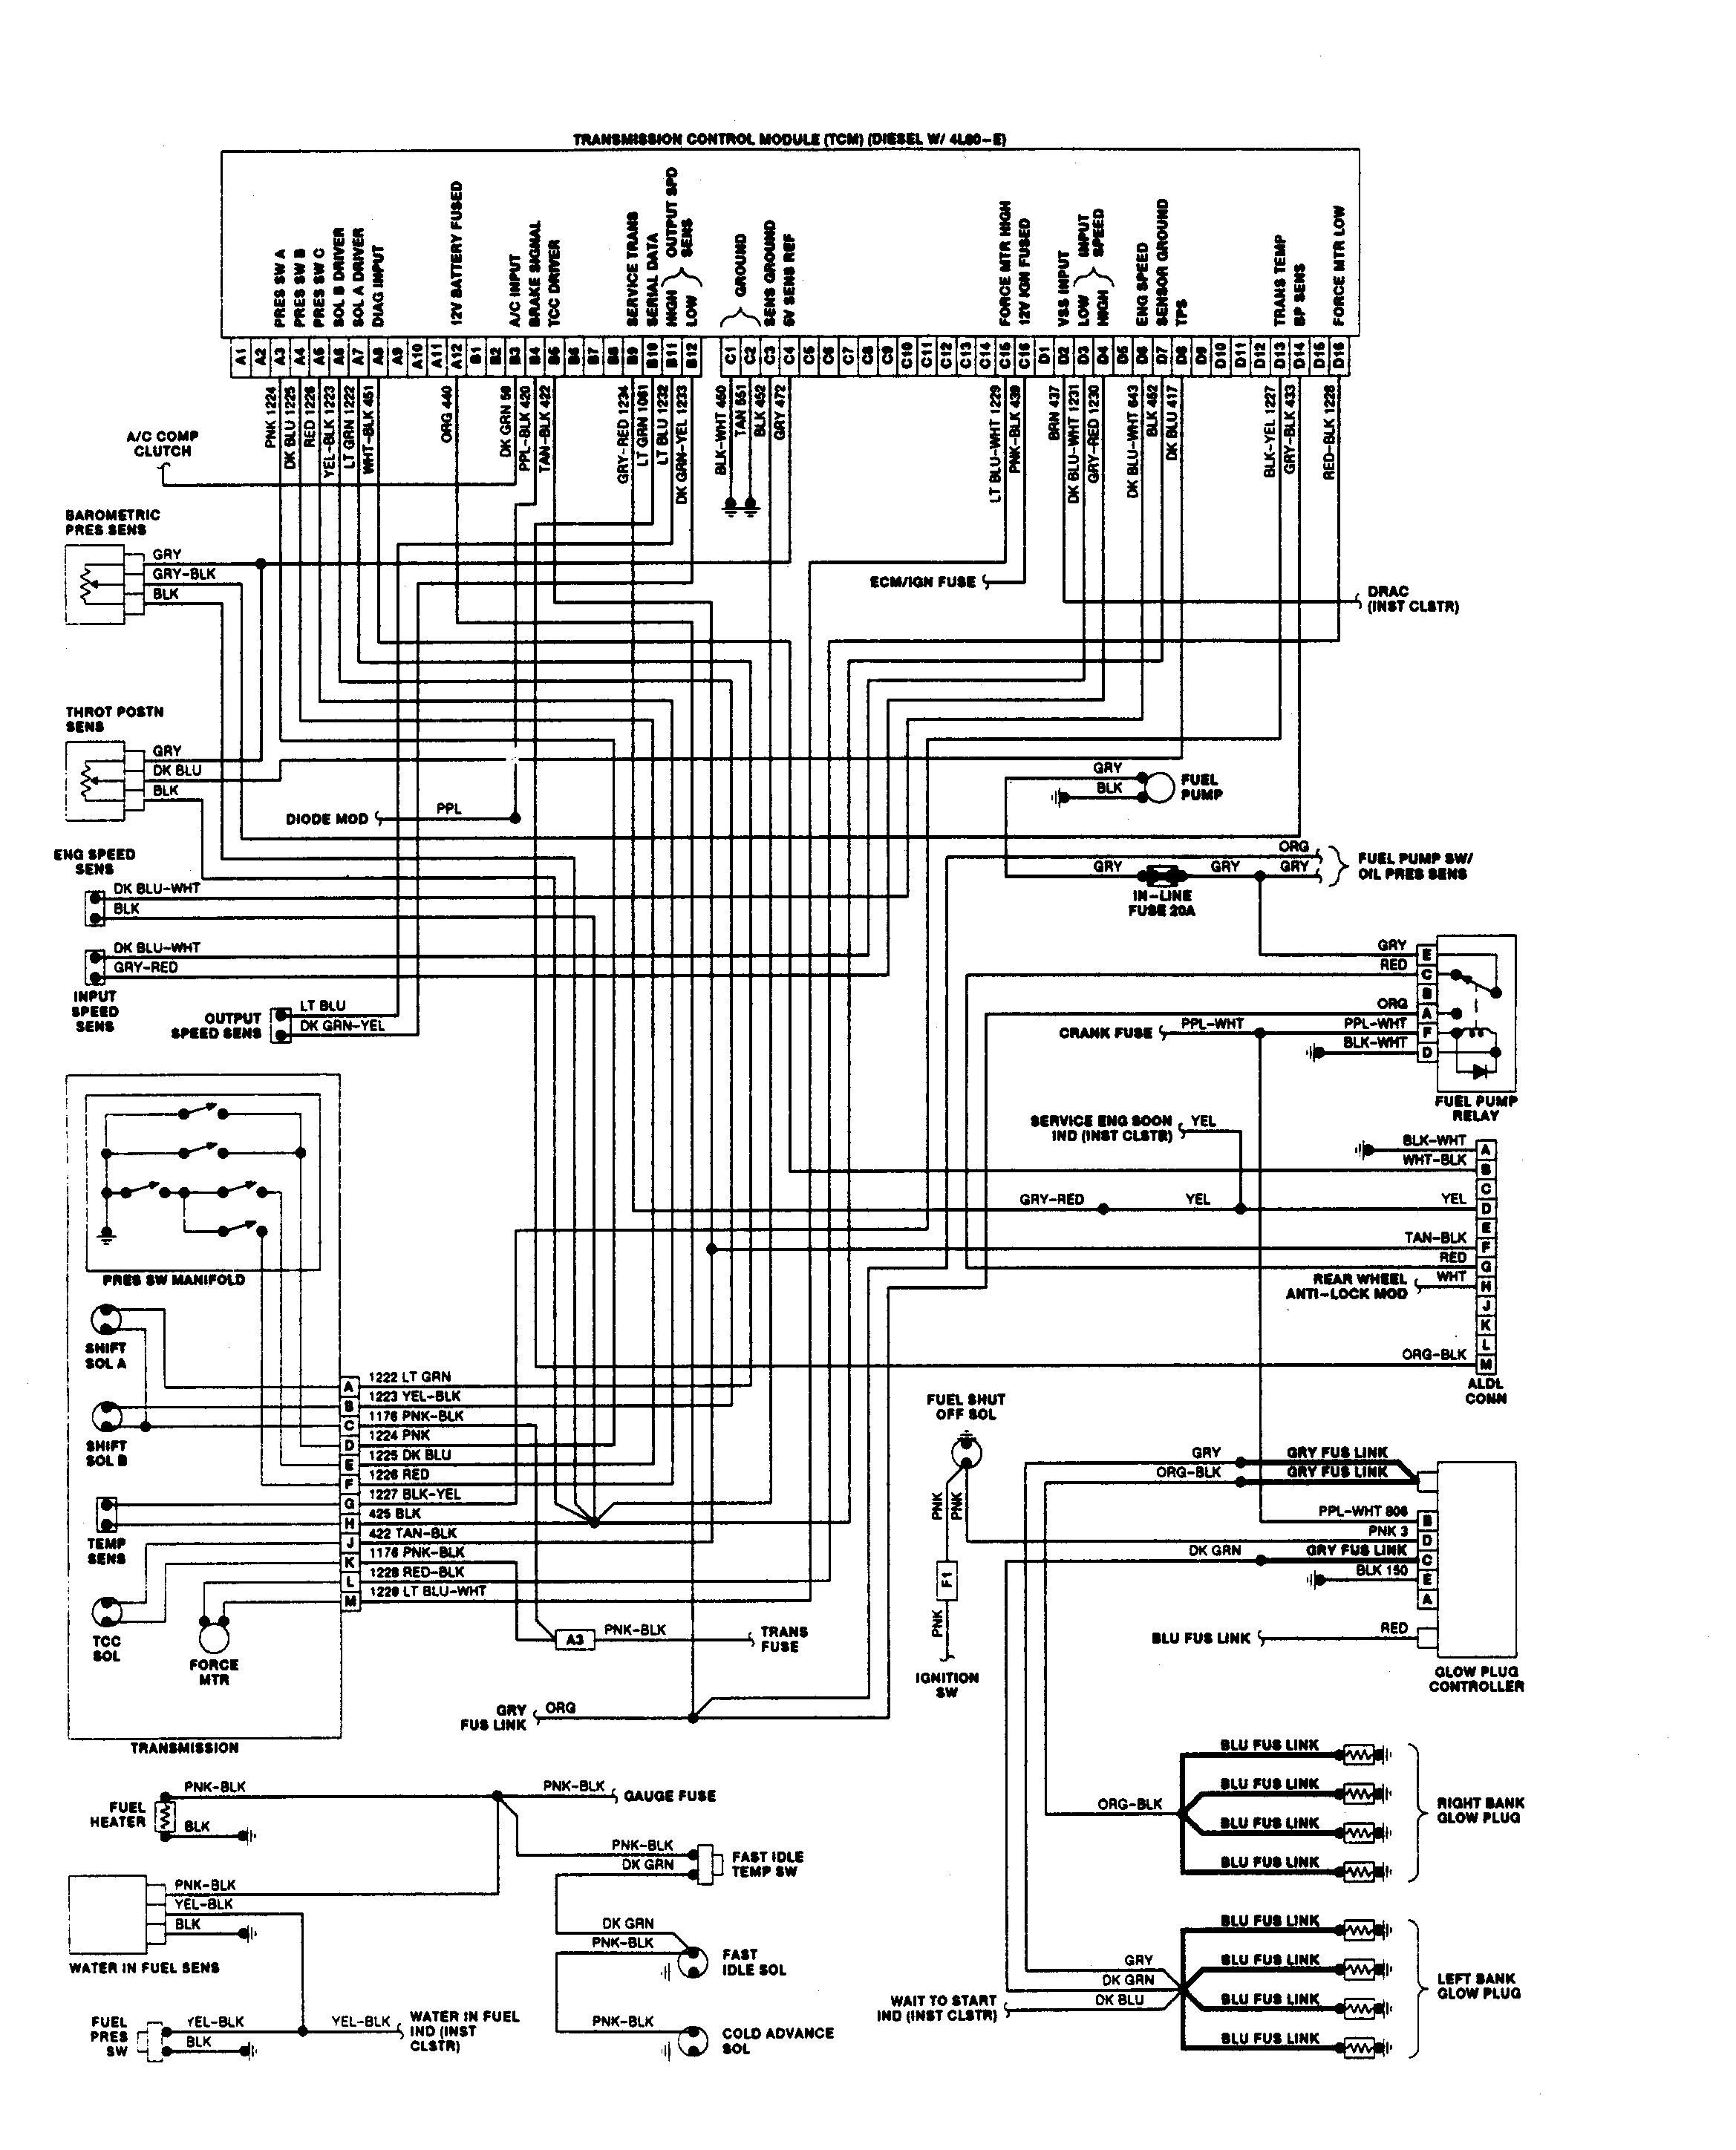 91 chevy wiring diagram private sharing about wiring diagram u2022 93 chevy 1500 wiring diagram 1991 chevrolet suburban  [ 2338 x 2896 Pixel ]